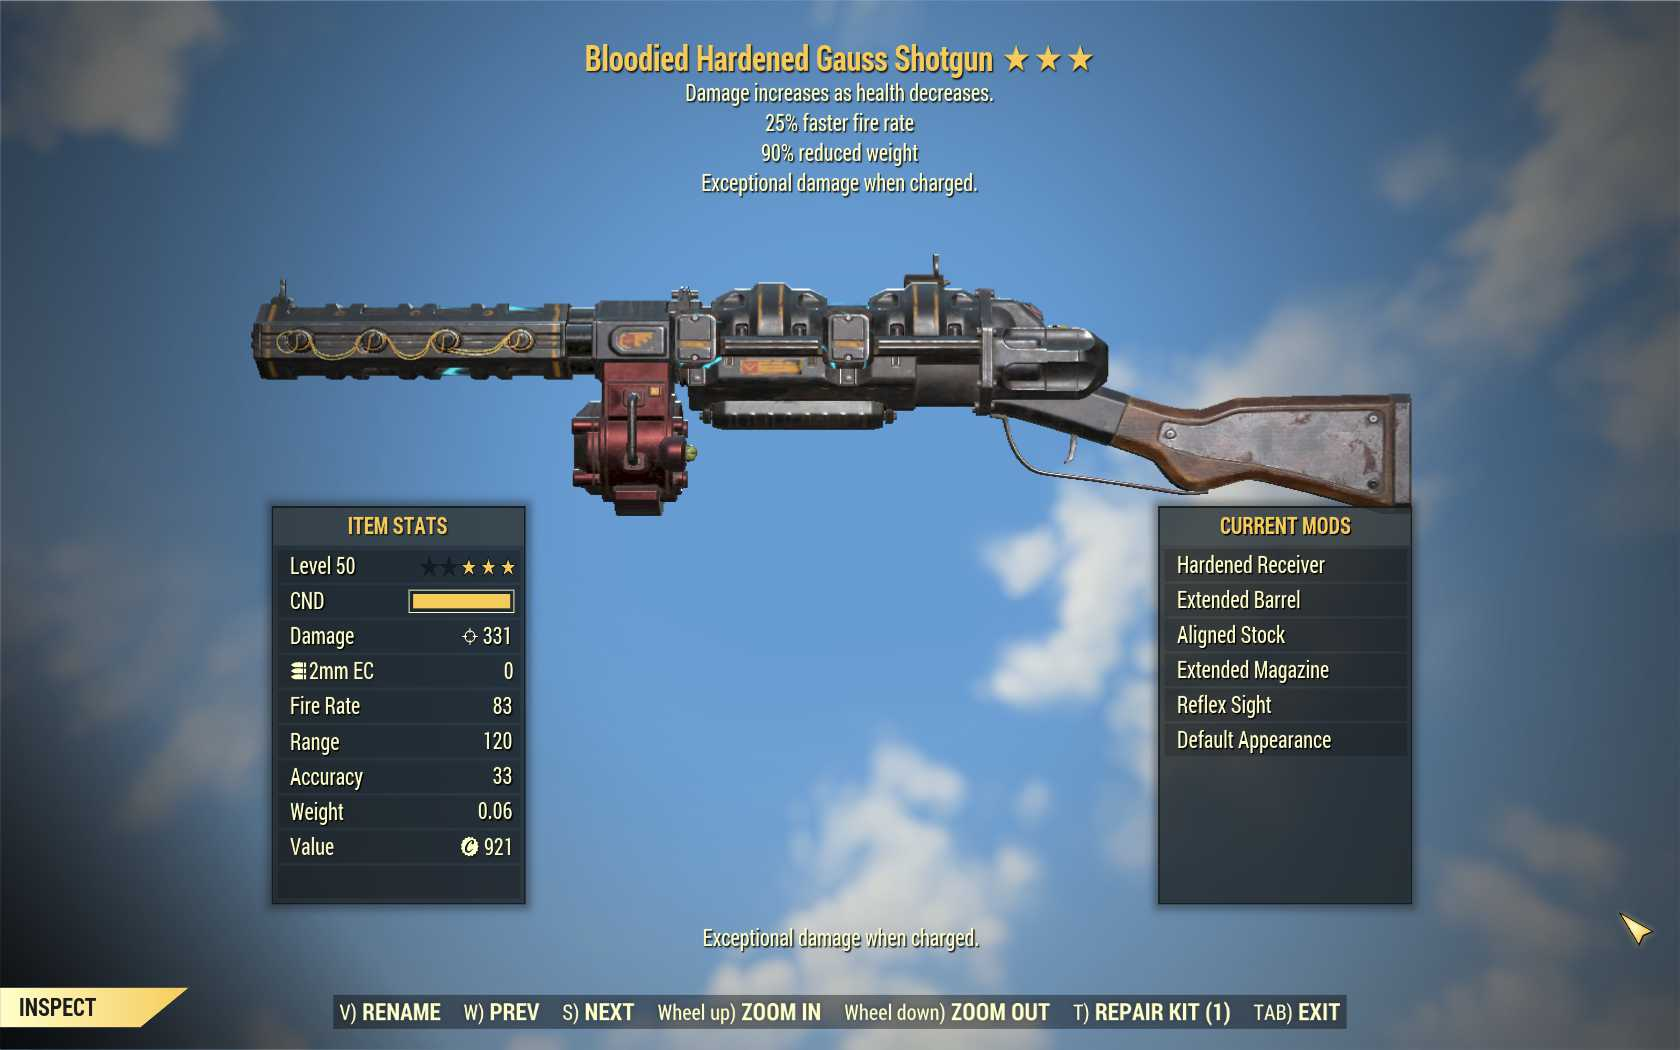 Bloodied Gauss Shotgun (25% faster fire rate, 90% reduced weight) FULL MODDED [Wastelanders]